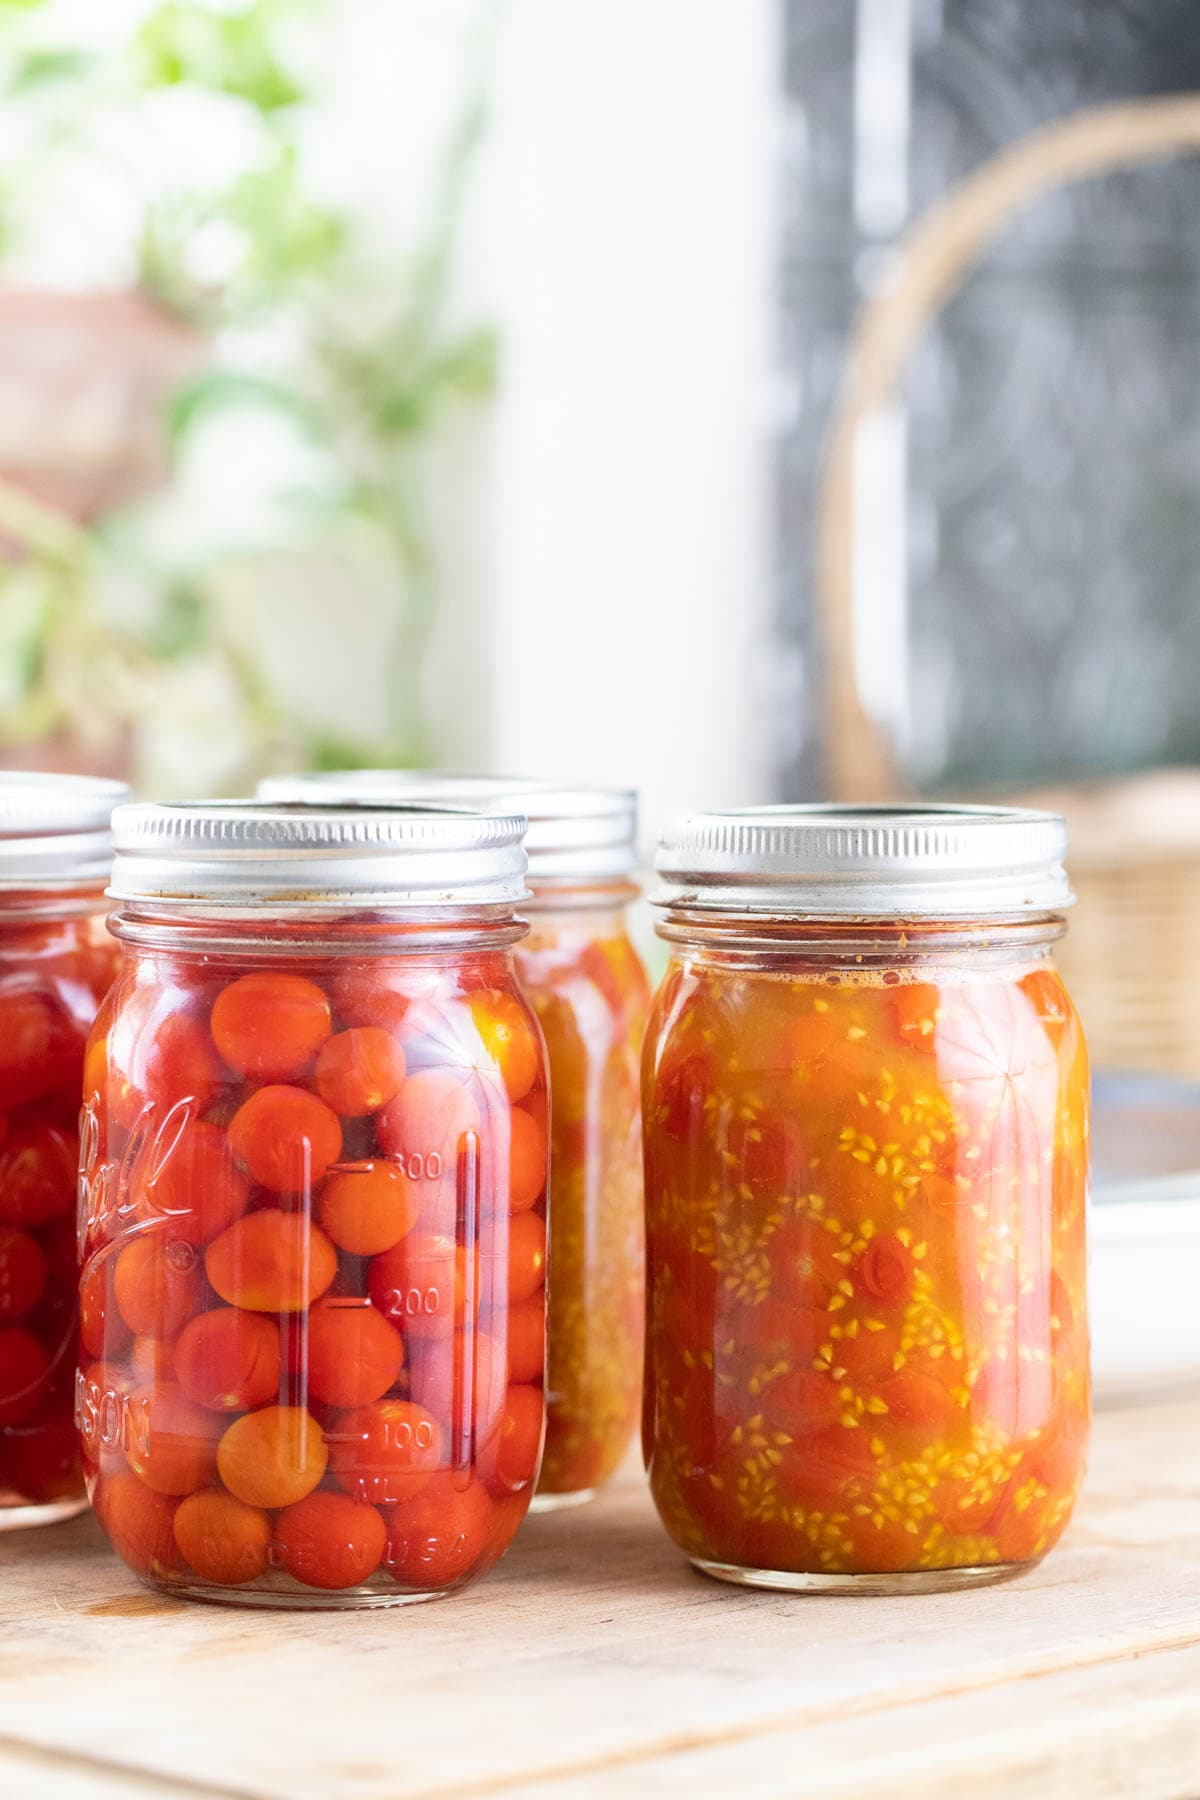 Canned cherry tomatoes ready for processing.